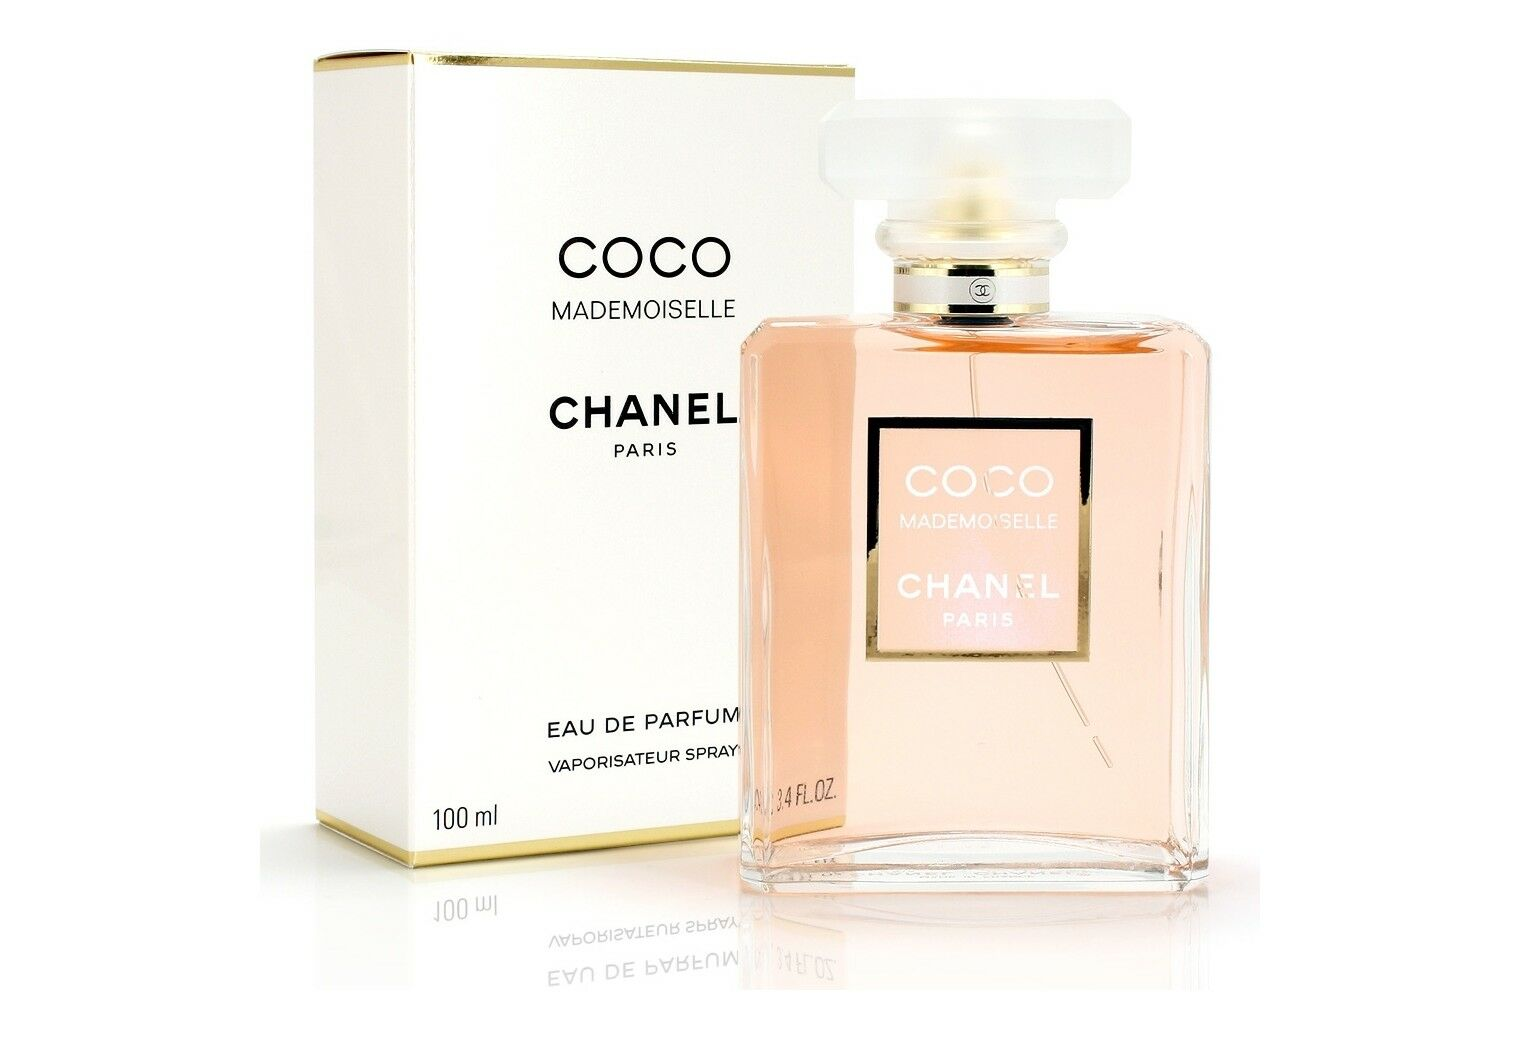 coco mademoiselle von chanel eau de perfume spray 100ml f r damen eur 84 90 picclick de. Black Bedroom Furniture Sets. Home Design Ideas